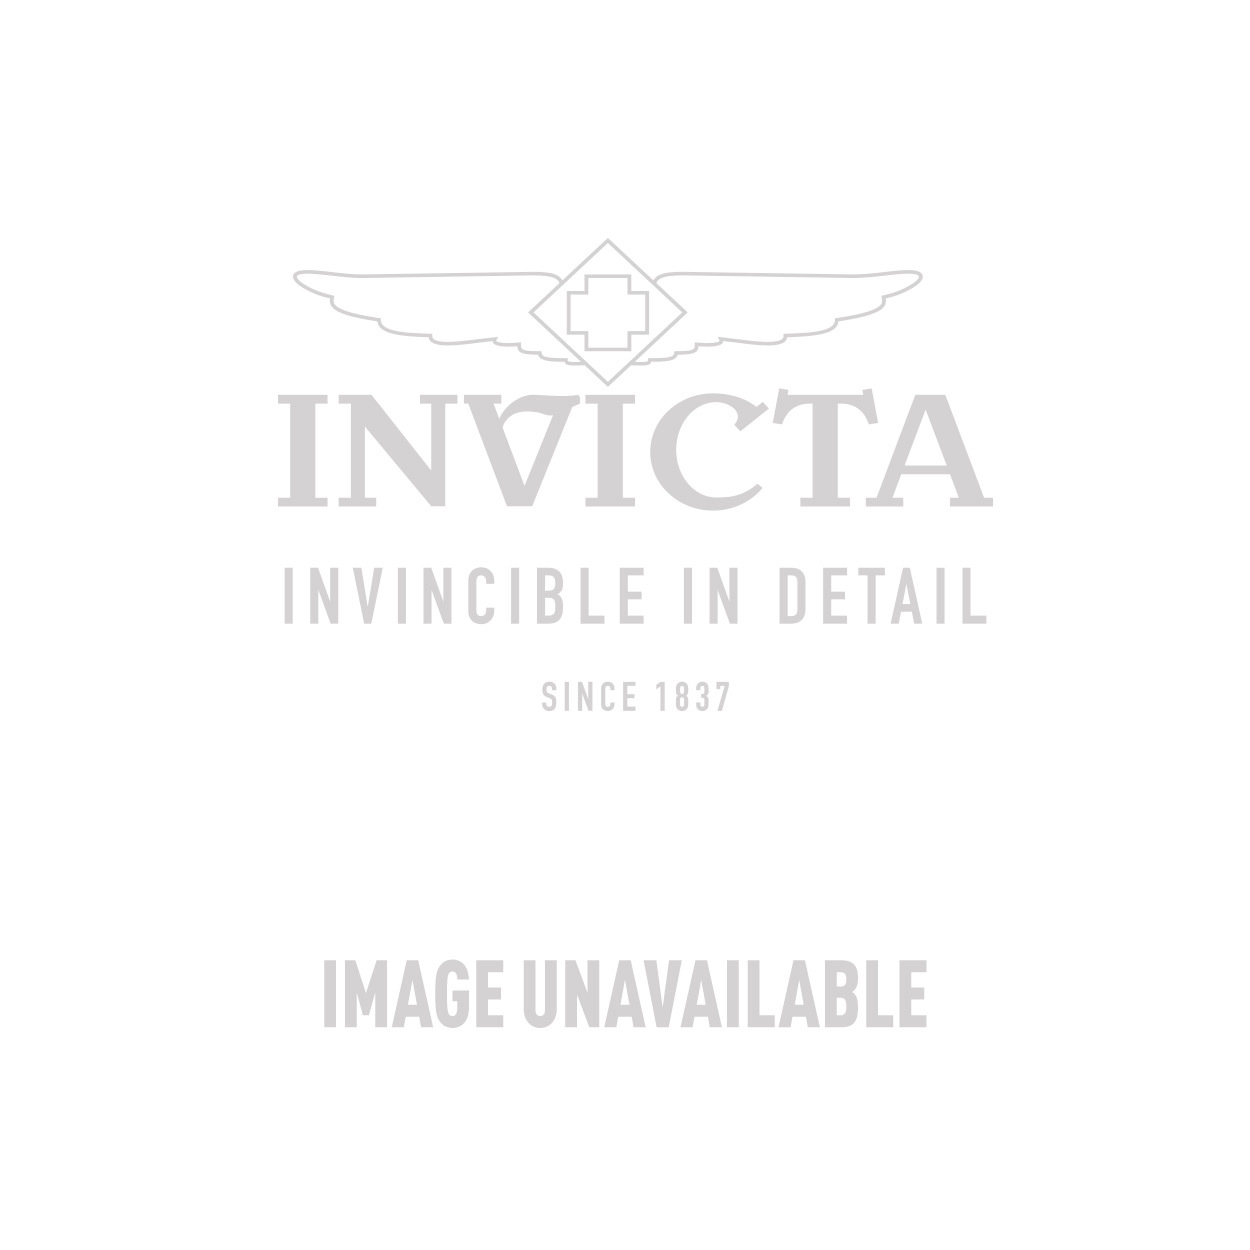 Invicta Vintage Quartz Watch - Stainless Steel case Stainless Steel band - Model 14964